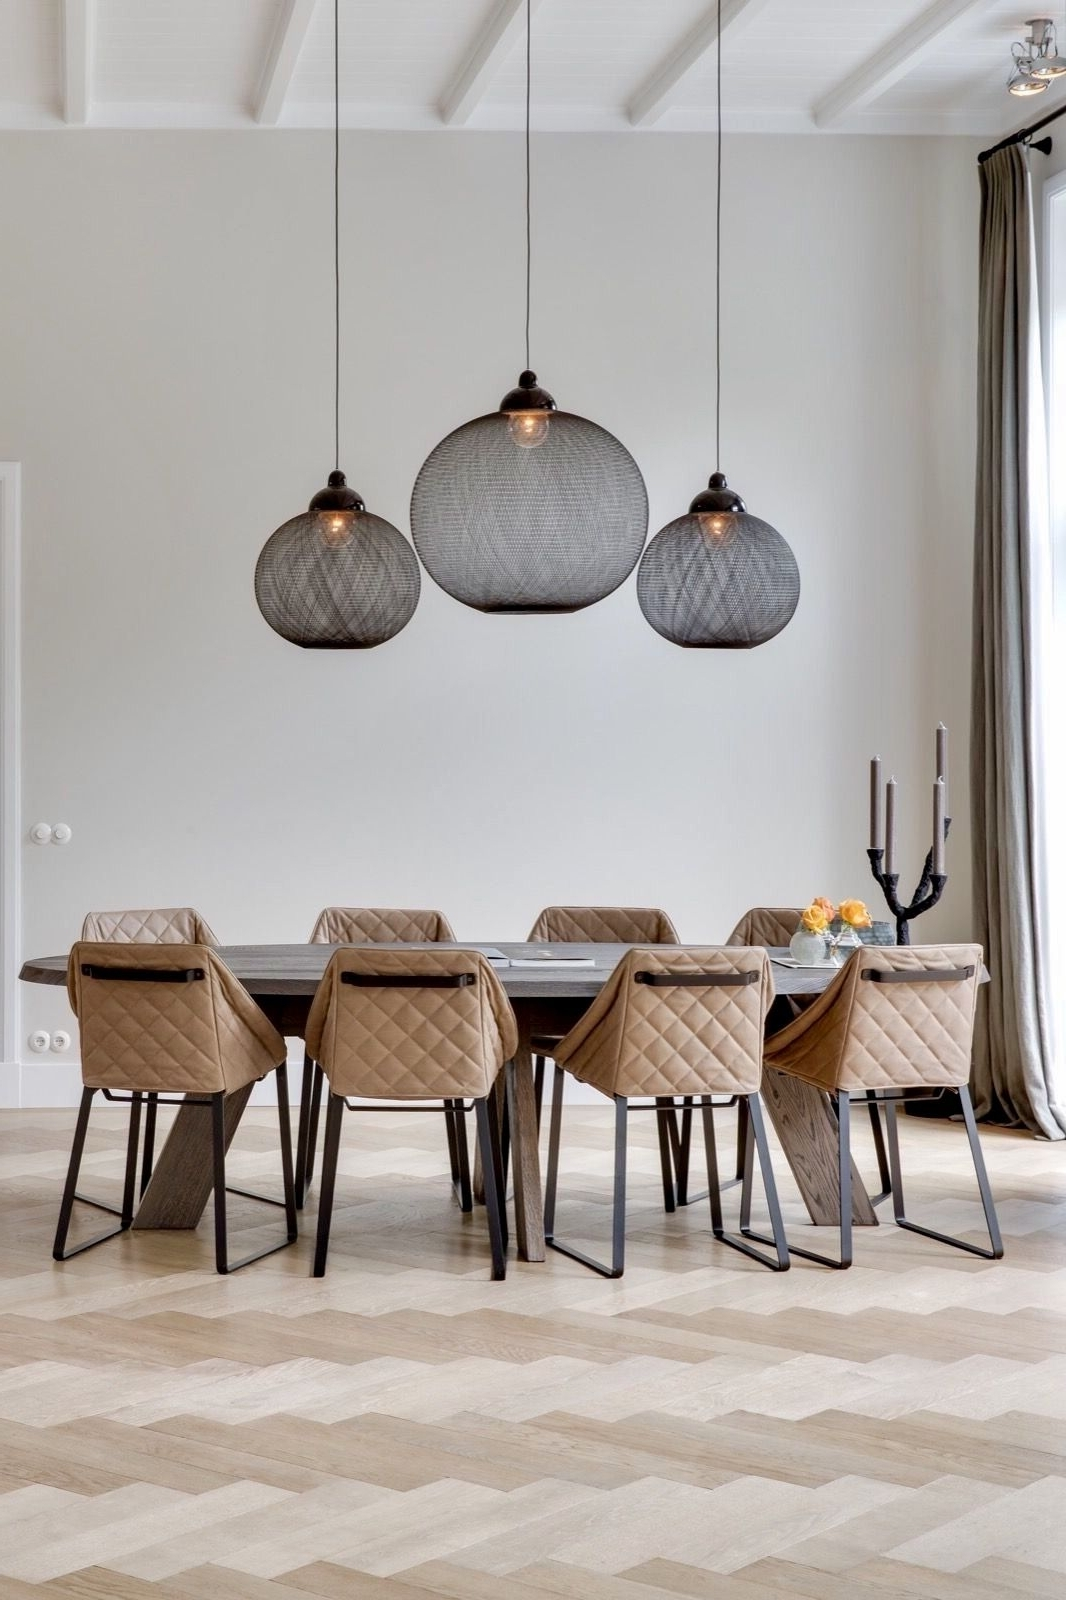 22 Best Ideas Of Pendant Lighting For Kitchen, Dining Room And For Most Popular Lamp Over Dining Tables (Gallery 2 of 25)